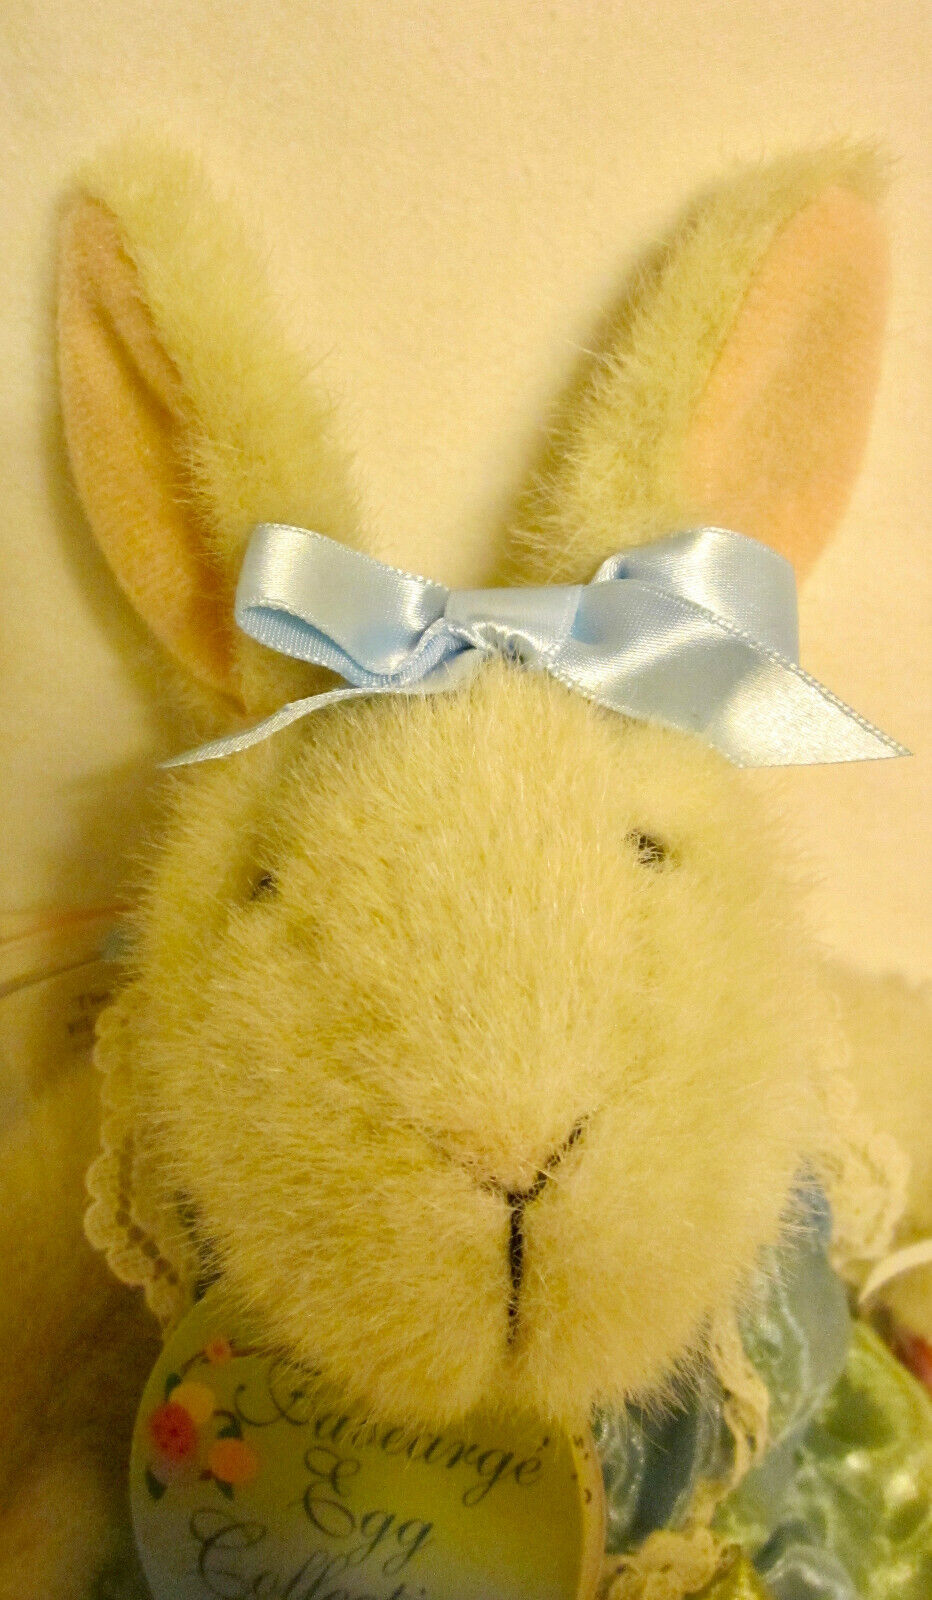 CUTE HOPPY VANDERHARE FROM FABEARGE EGG COLLECTION , RABBIT WITH DECORATED EGG - $14.99